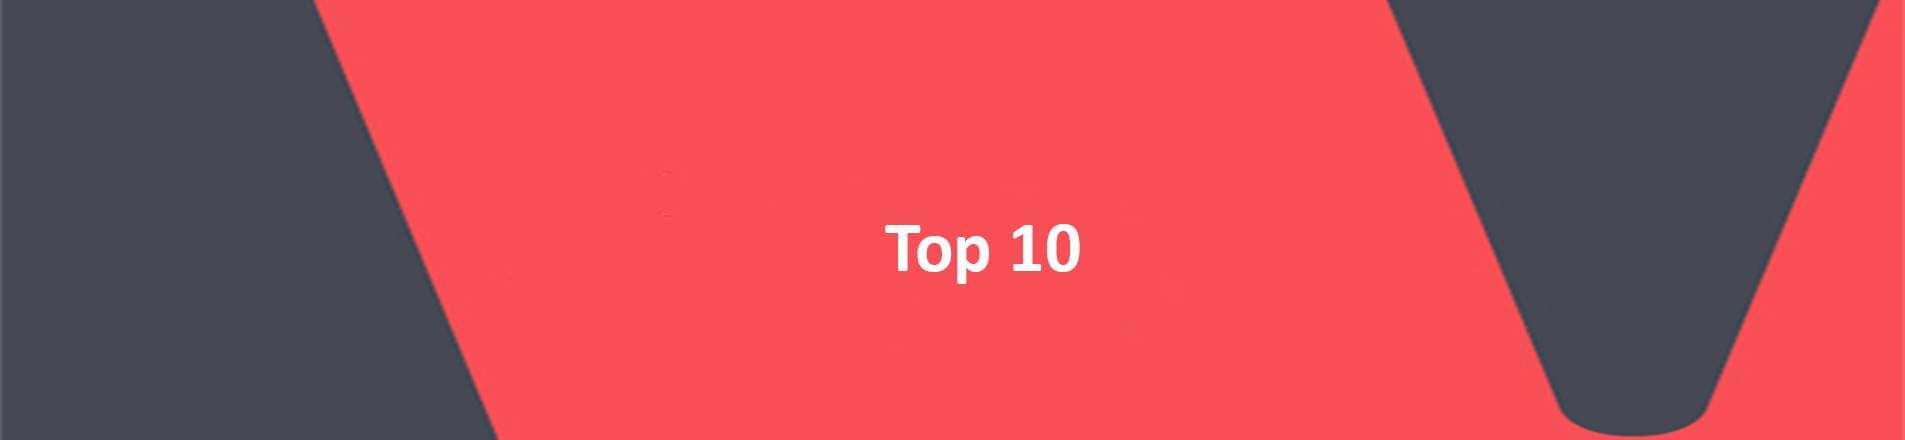 The word and number top 10 in white on a red VERCIDA branded background